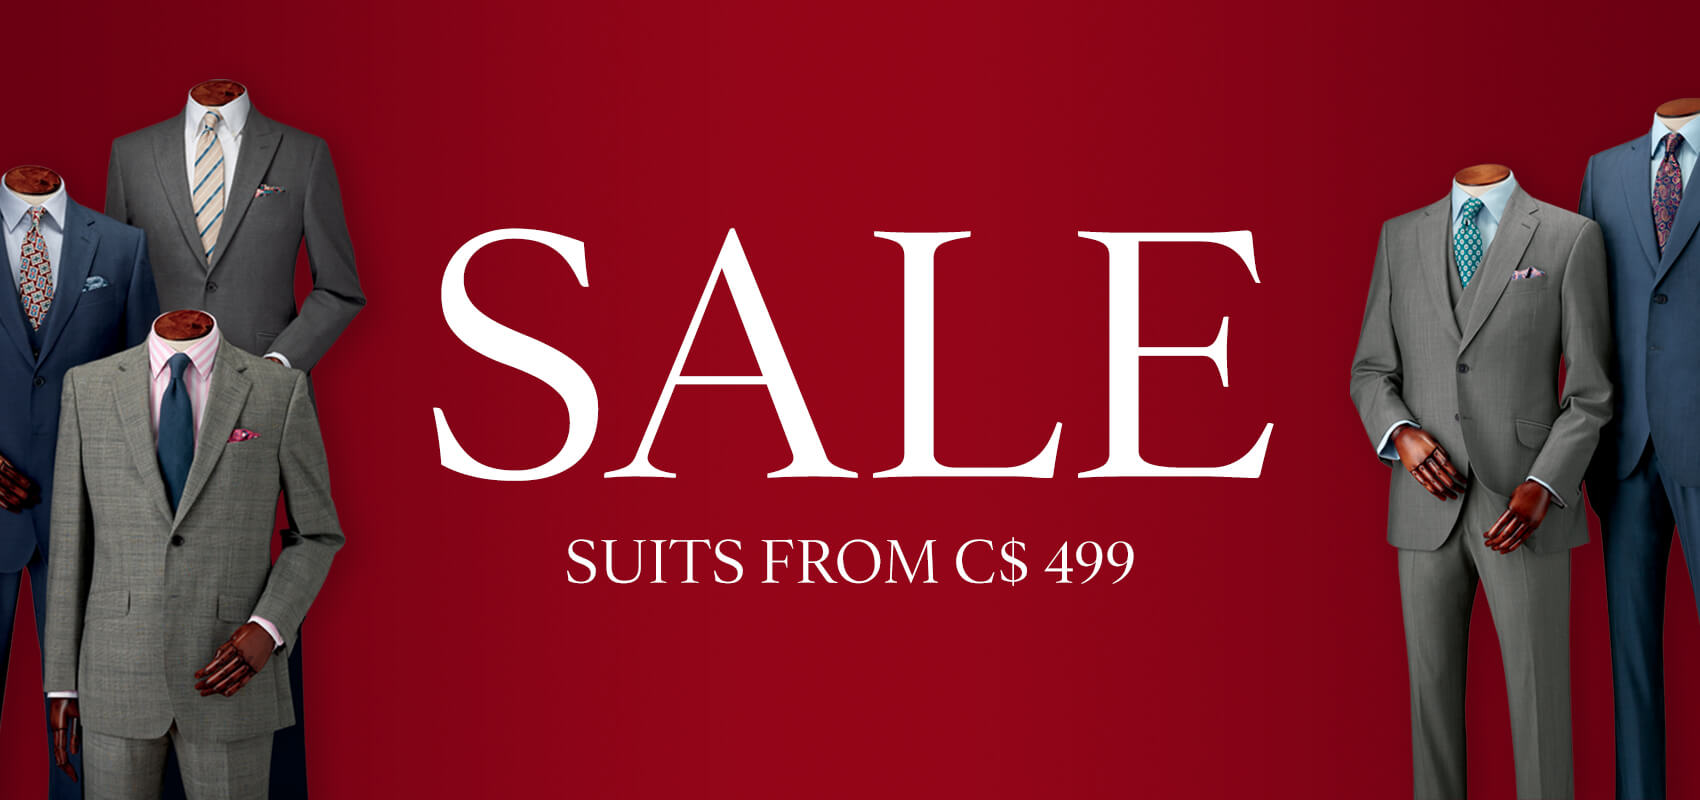 Sale suits from $499